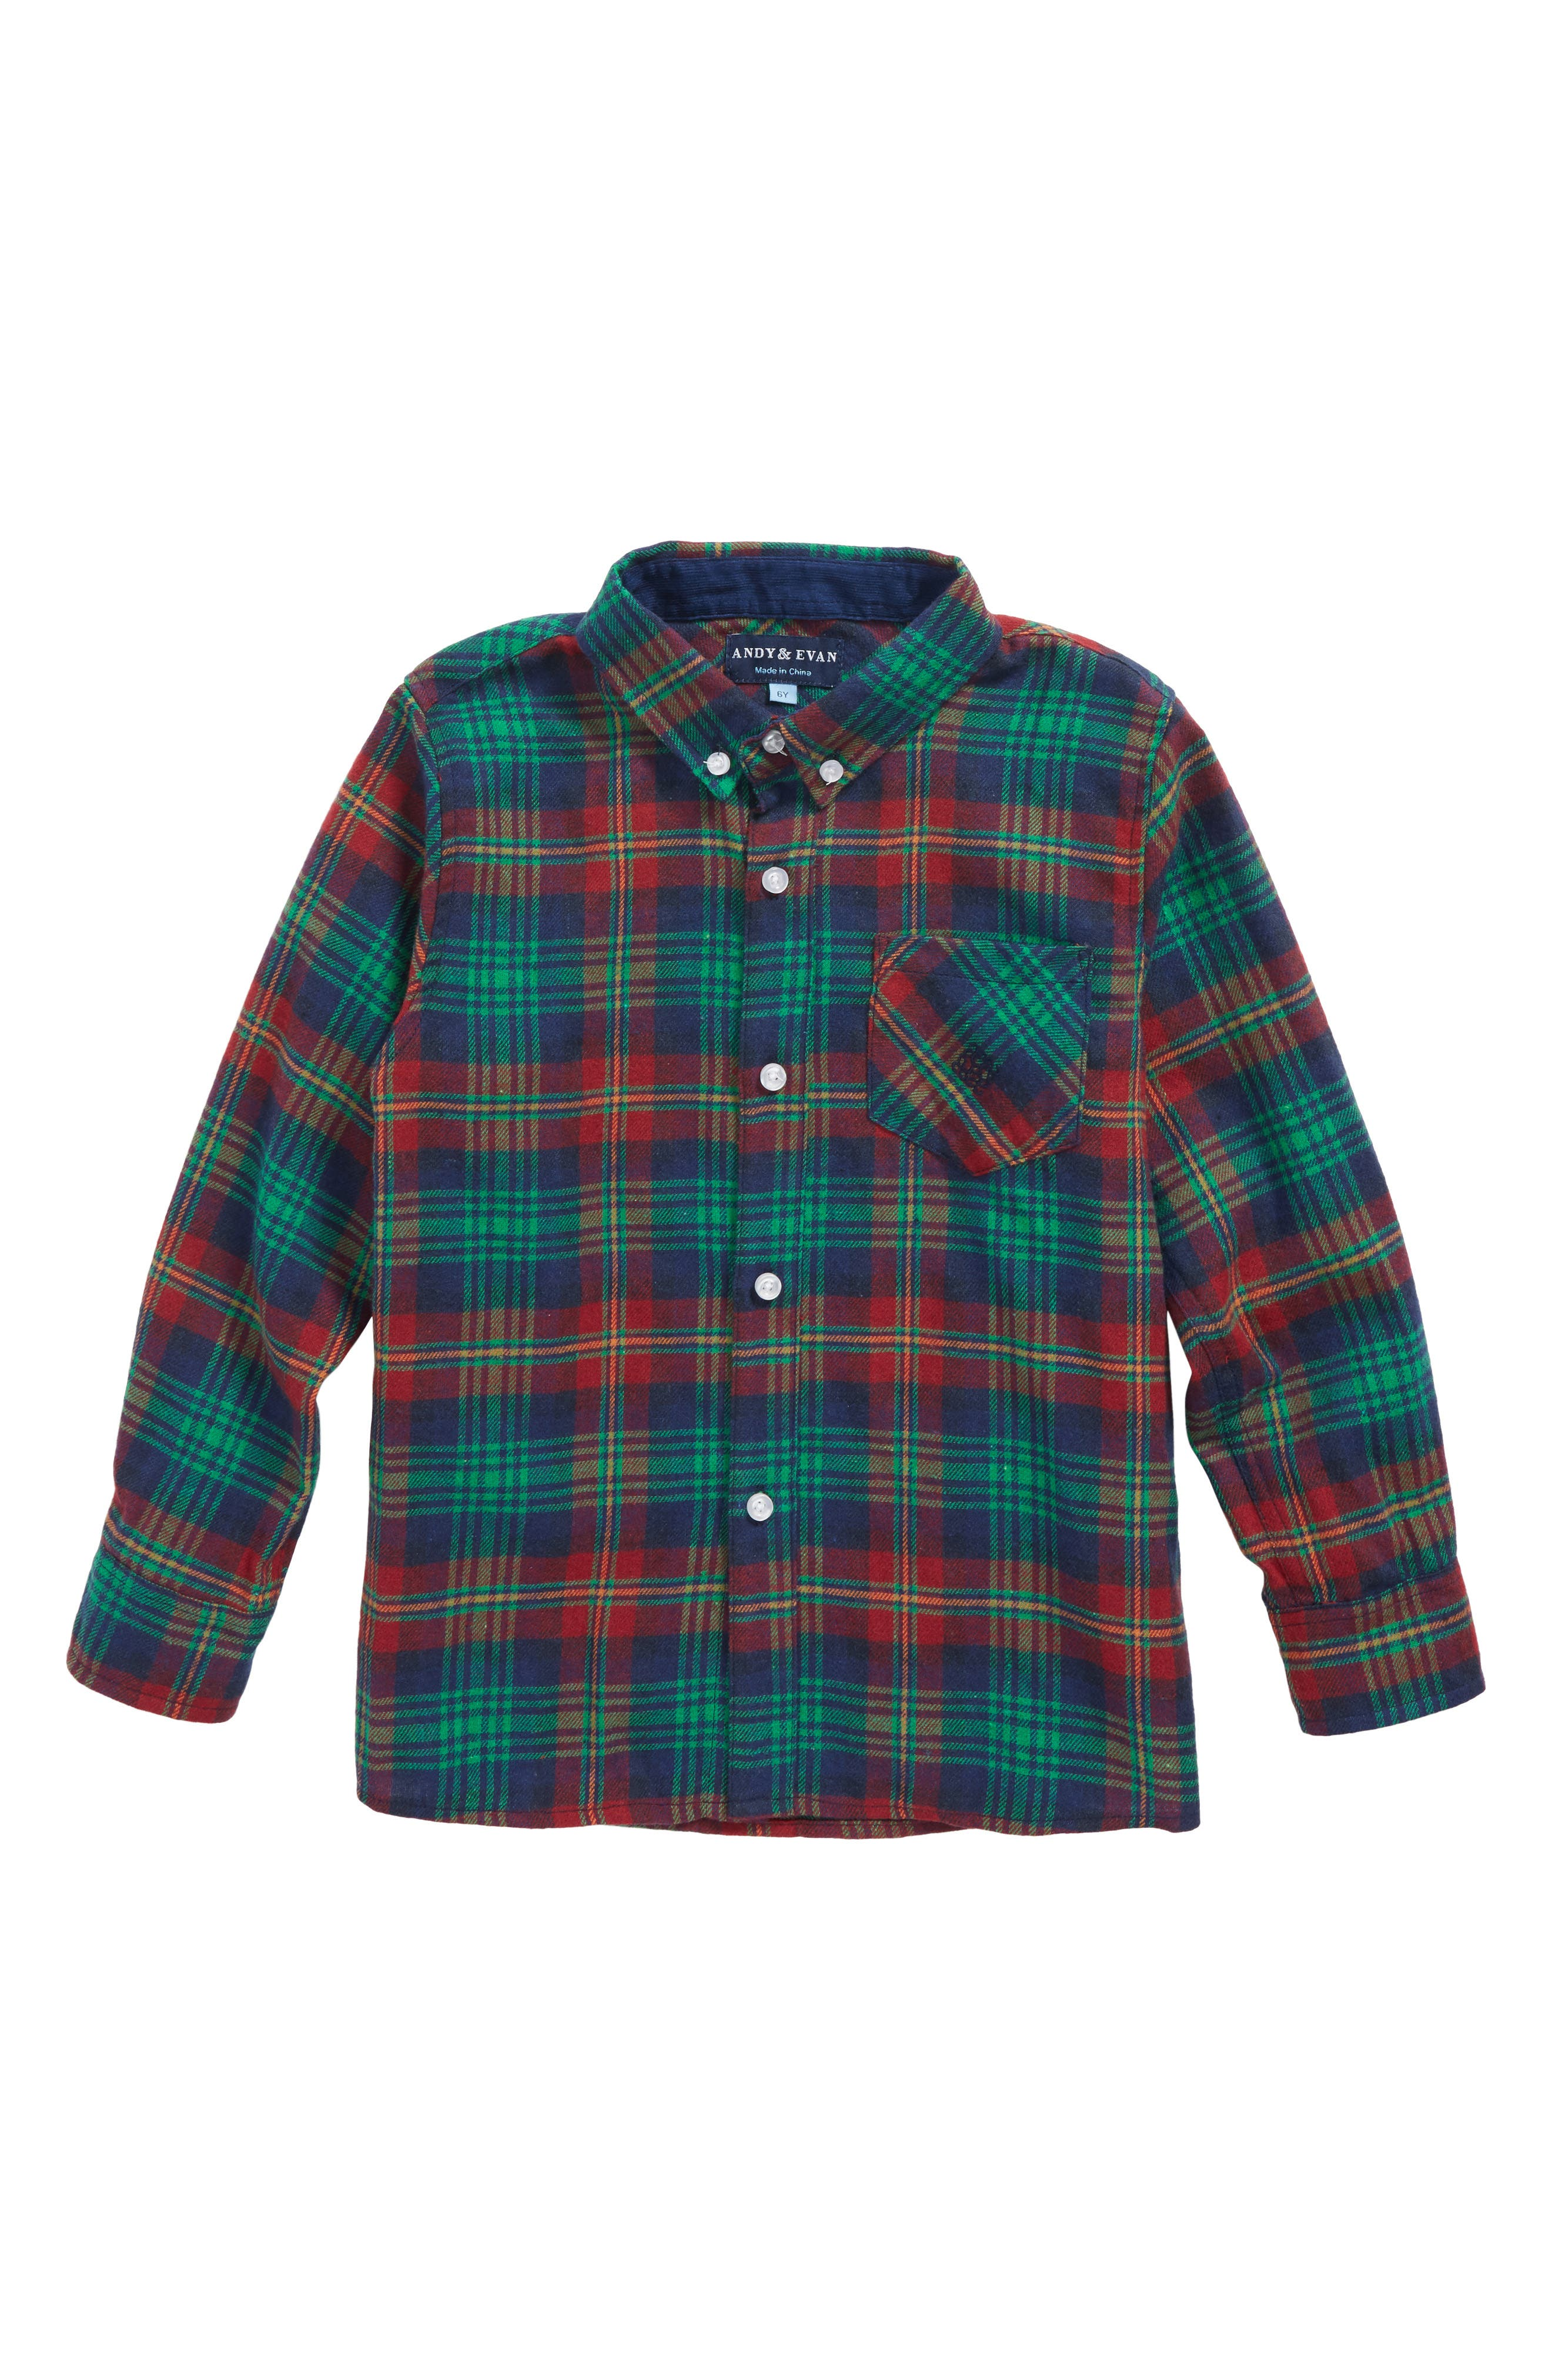 Plaid Woven Shirt,                         Main,                         color, Navy/ Red/ Green